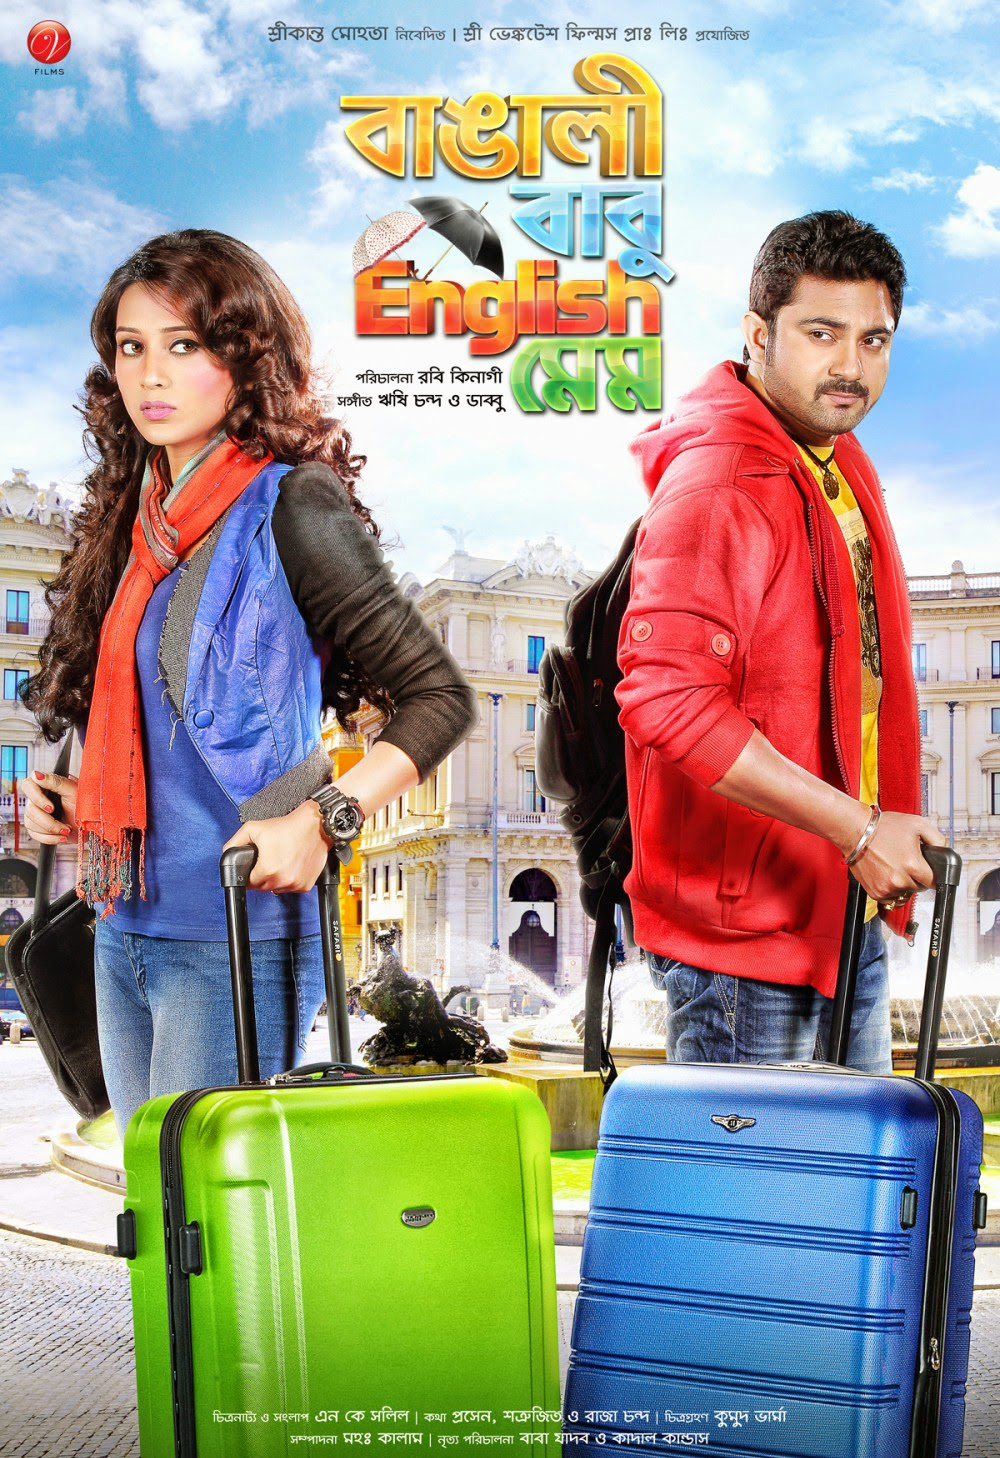 Bangali Babu English Mem (2014) Bengali Full Movie